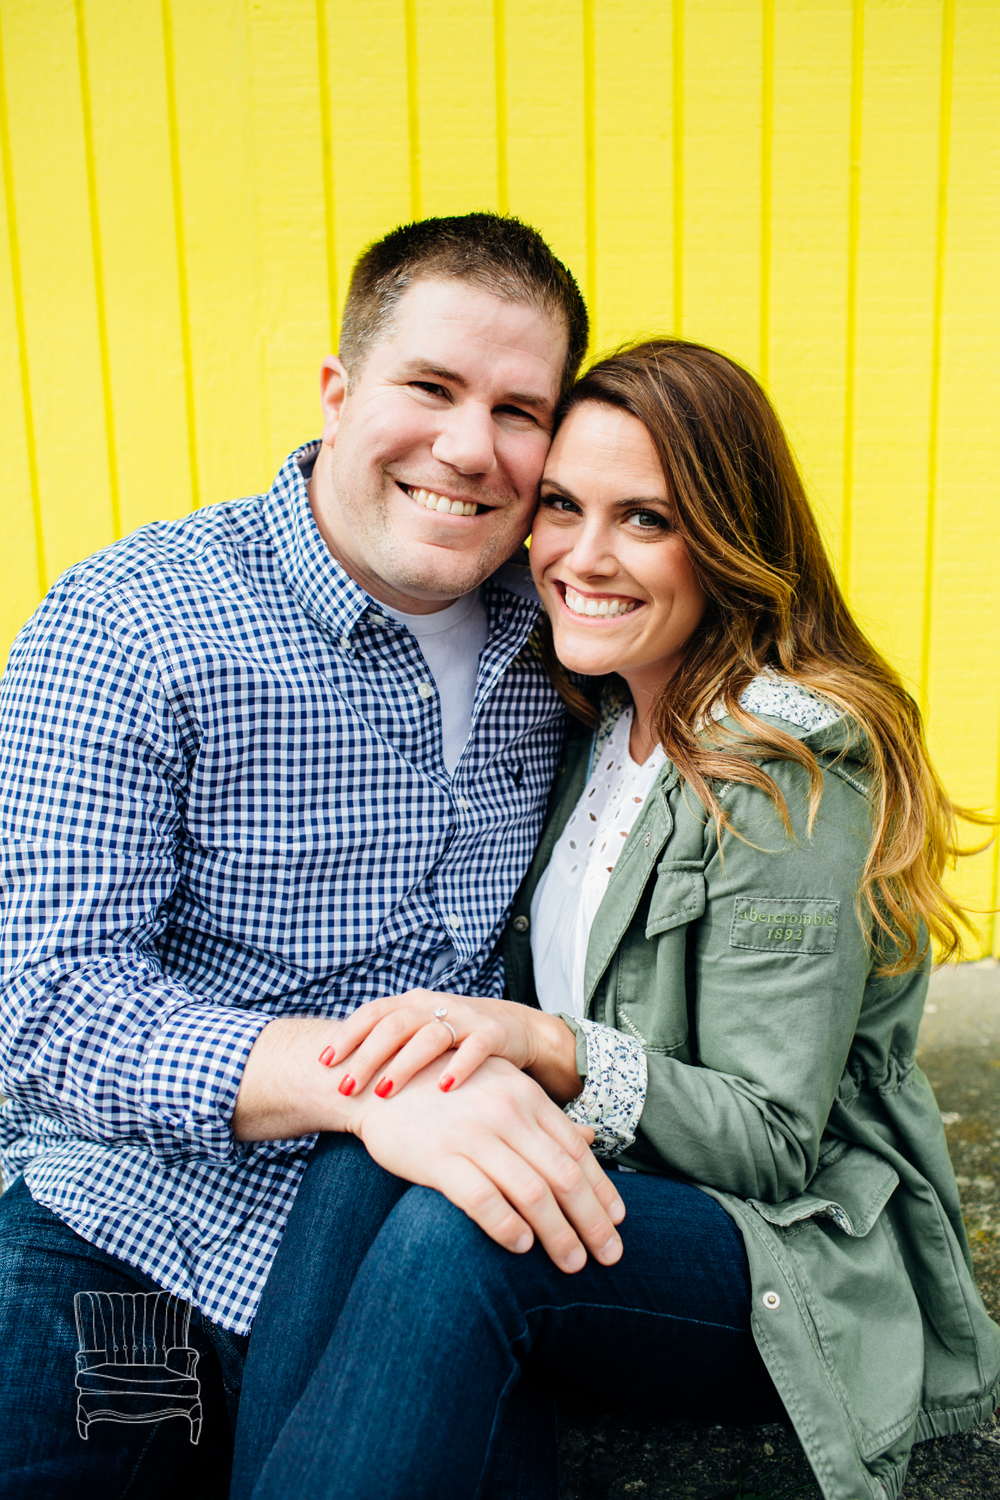 bellingham-engagement-photographer-photo-downtown-lindseyjames-66.jpg